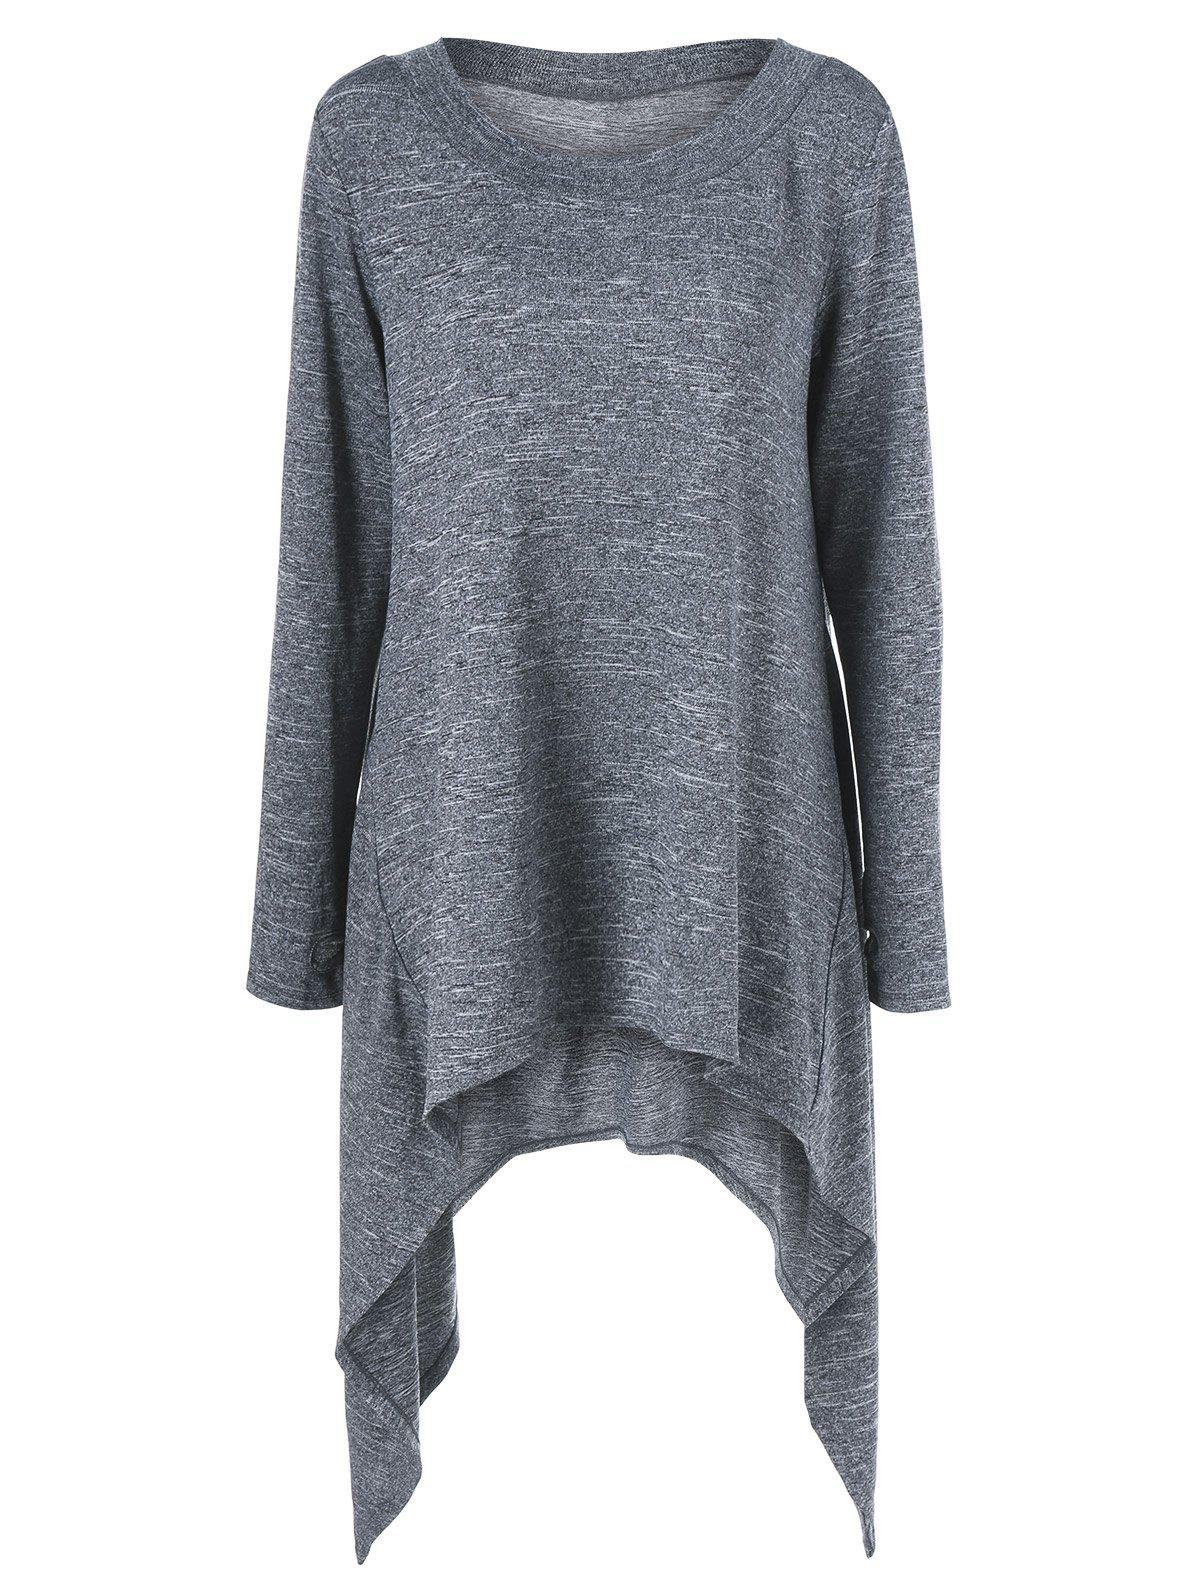 Thumb Hole Asymmetrical SweaterWOMEN<br><br>Size: XL; Color: DEEP GRAY; Type: Cardigans; Material: Polyester,Spandex; Sleeve Length: Full; Collar: Scoop Neck; Style: Casual; Pattern Type: Solid; Season: Fall,Spring,Winter; Weight: 0.400kg; Package Contents: 1 x Sweater;